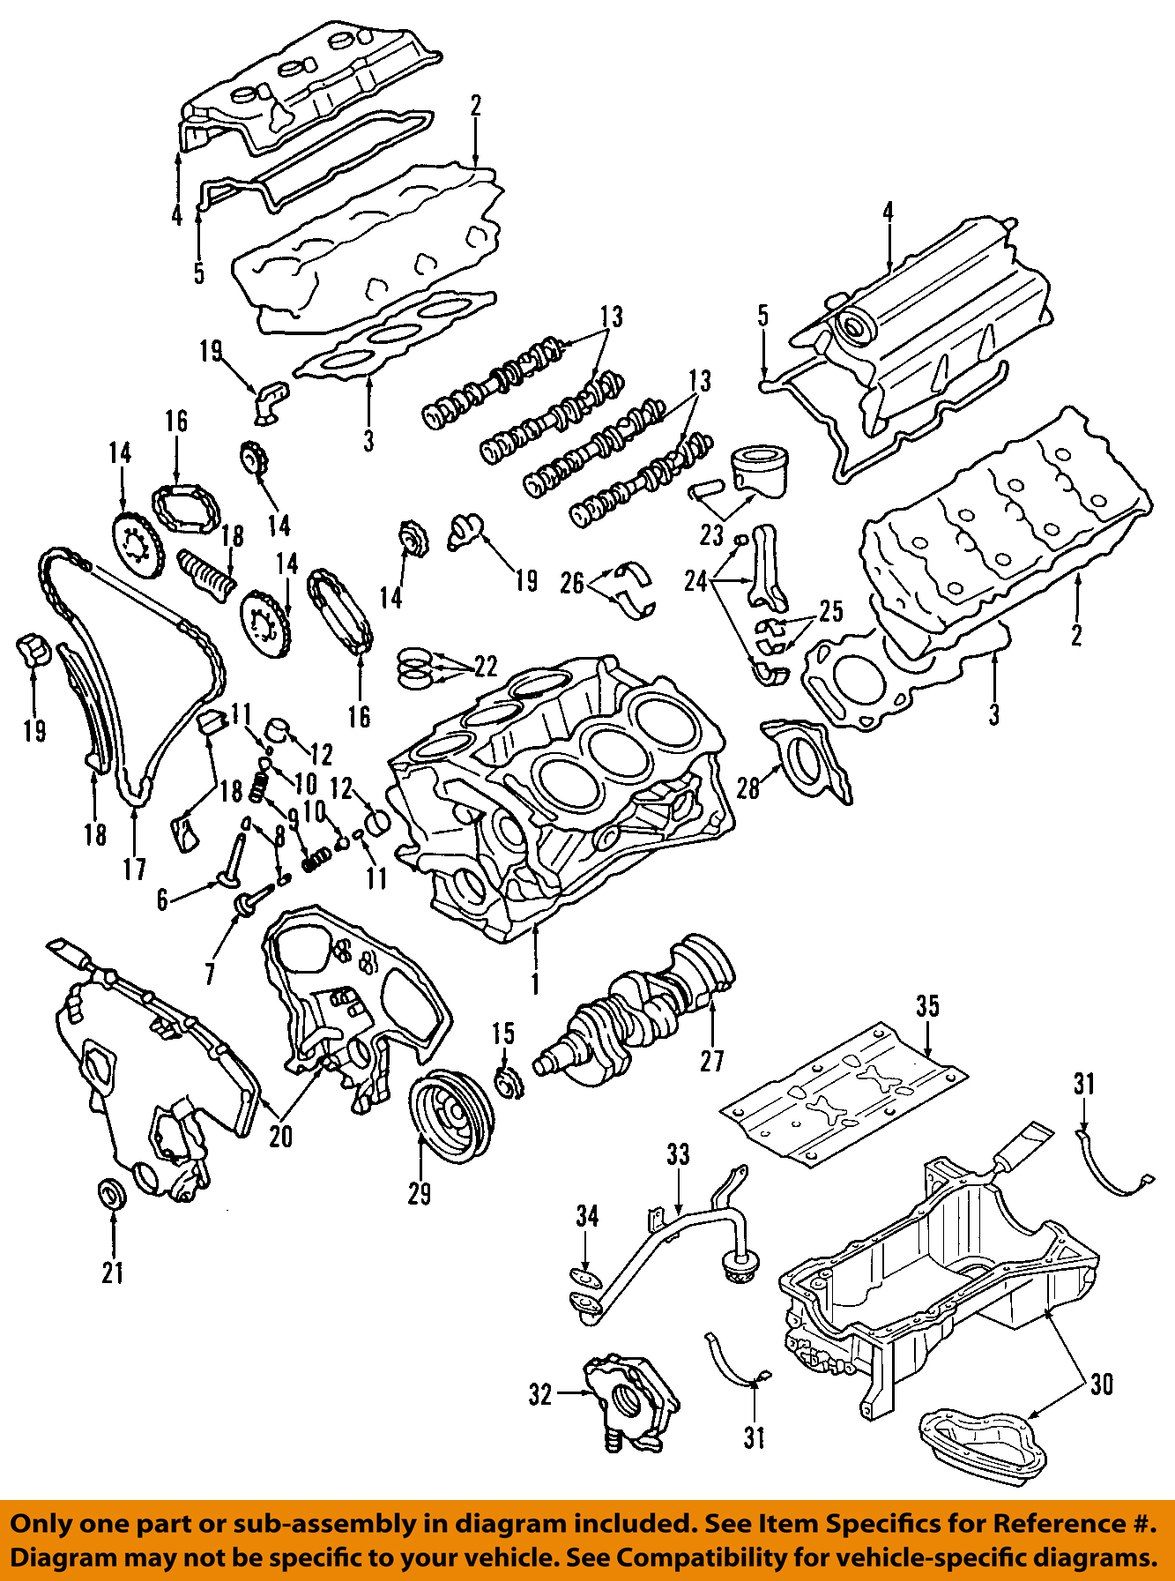 1998 Nissan Quest Engine Diagram Wiring Library 98 Pathfinder 2000 Parts Photos Of Oem Cheap